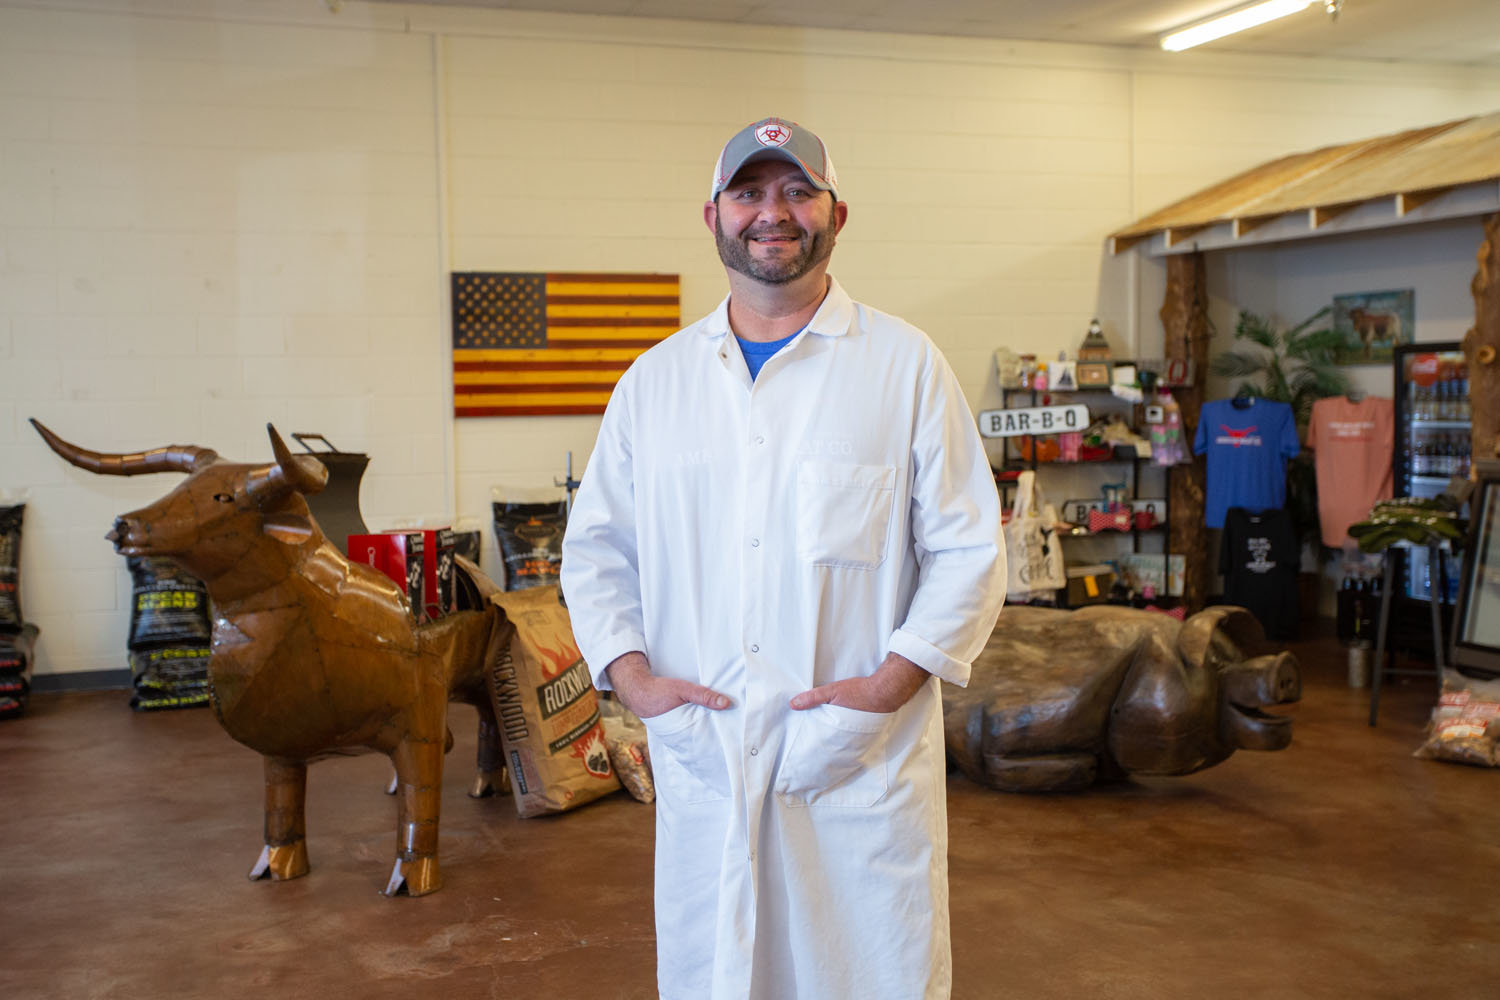 A PLACE TO MEAT: Jason Owen leads a small staff at American Meat Co., succeeding his father seven years ago as owner of the butcher shop.